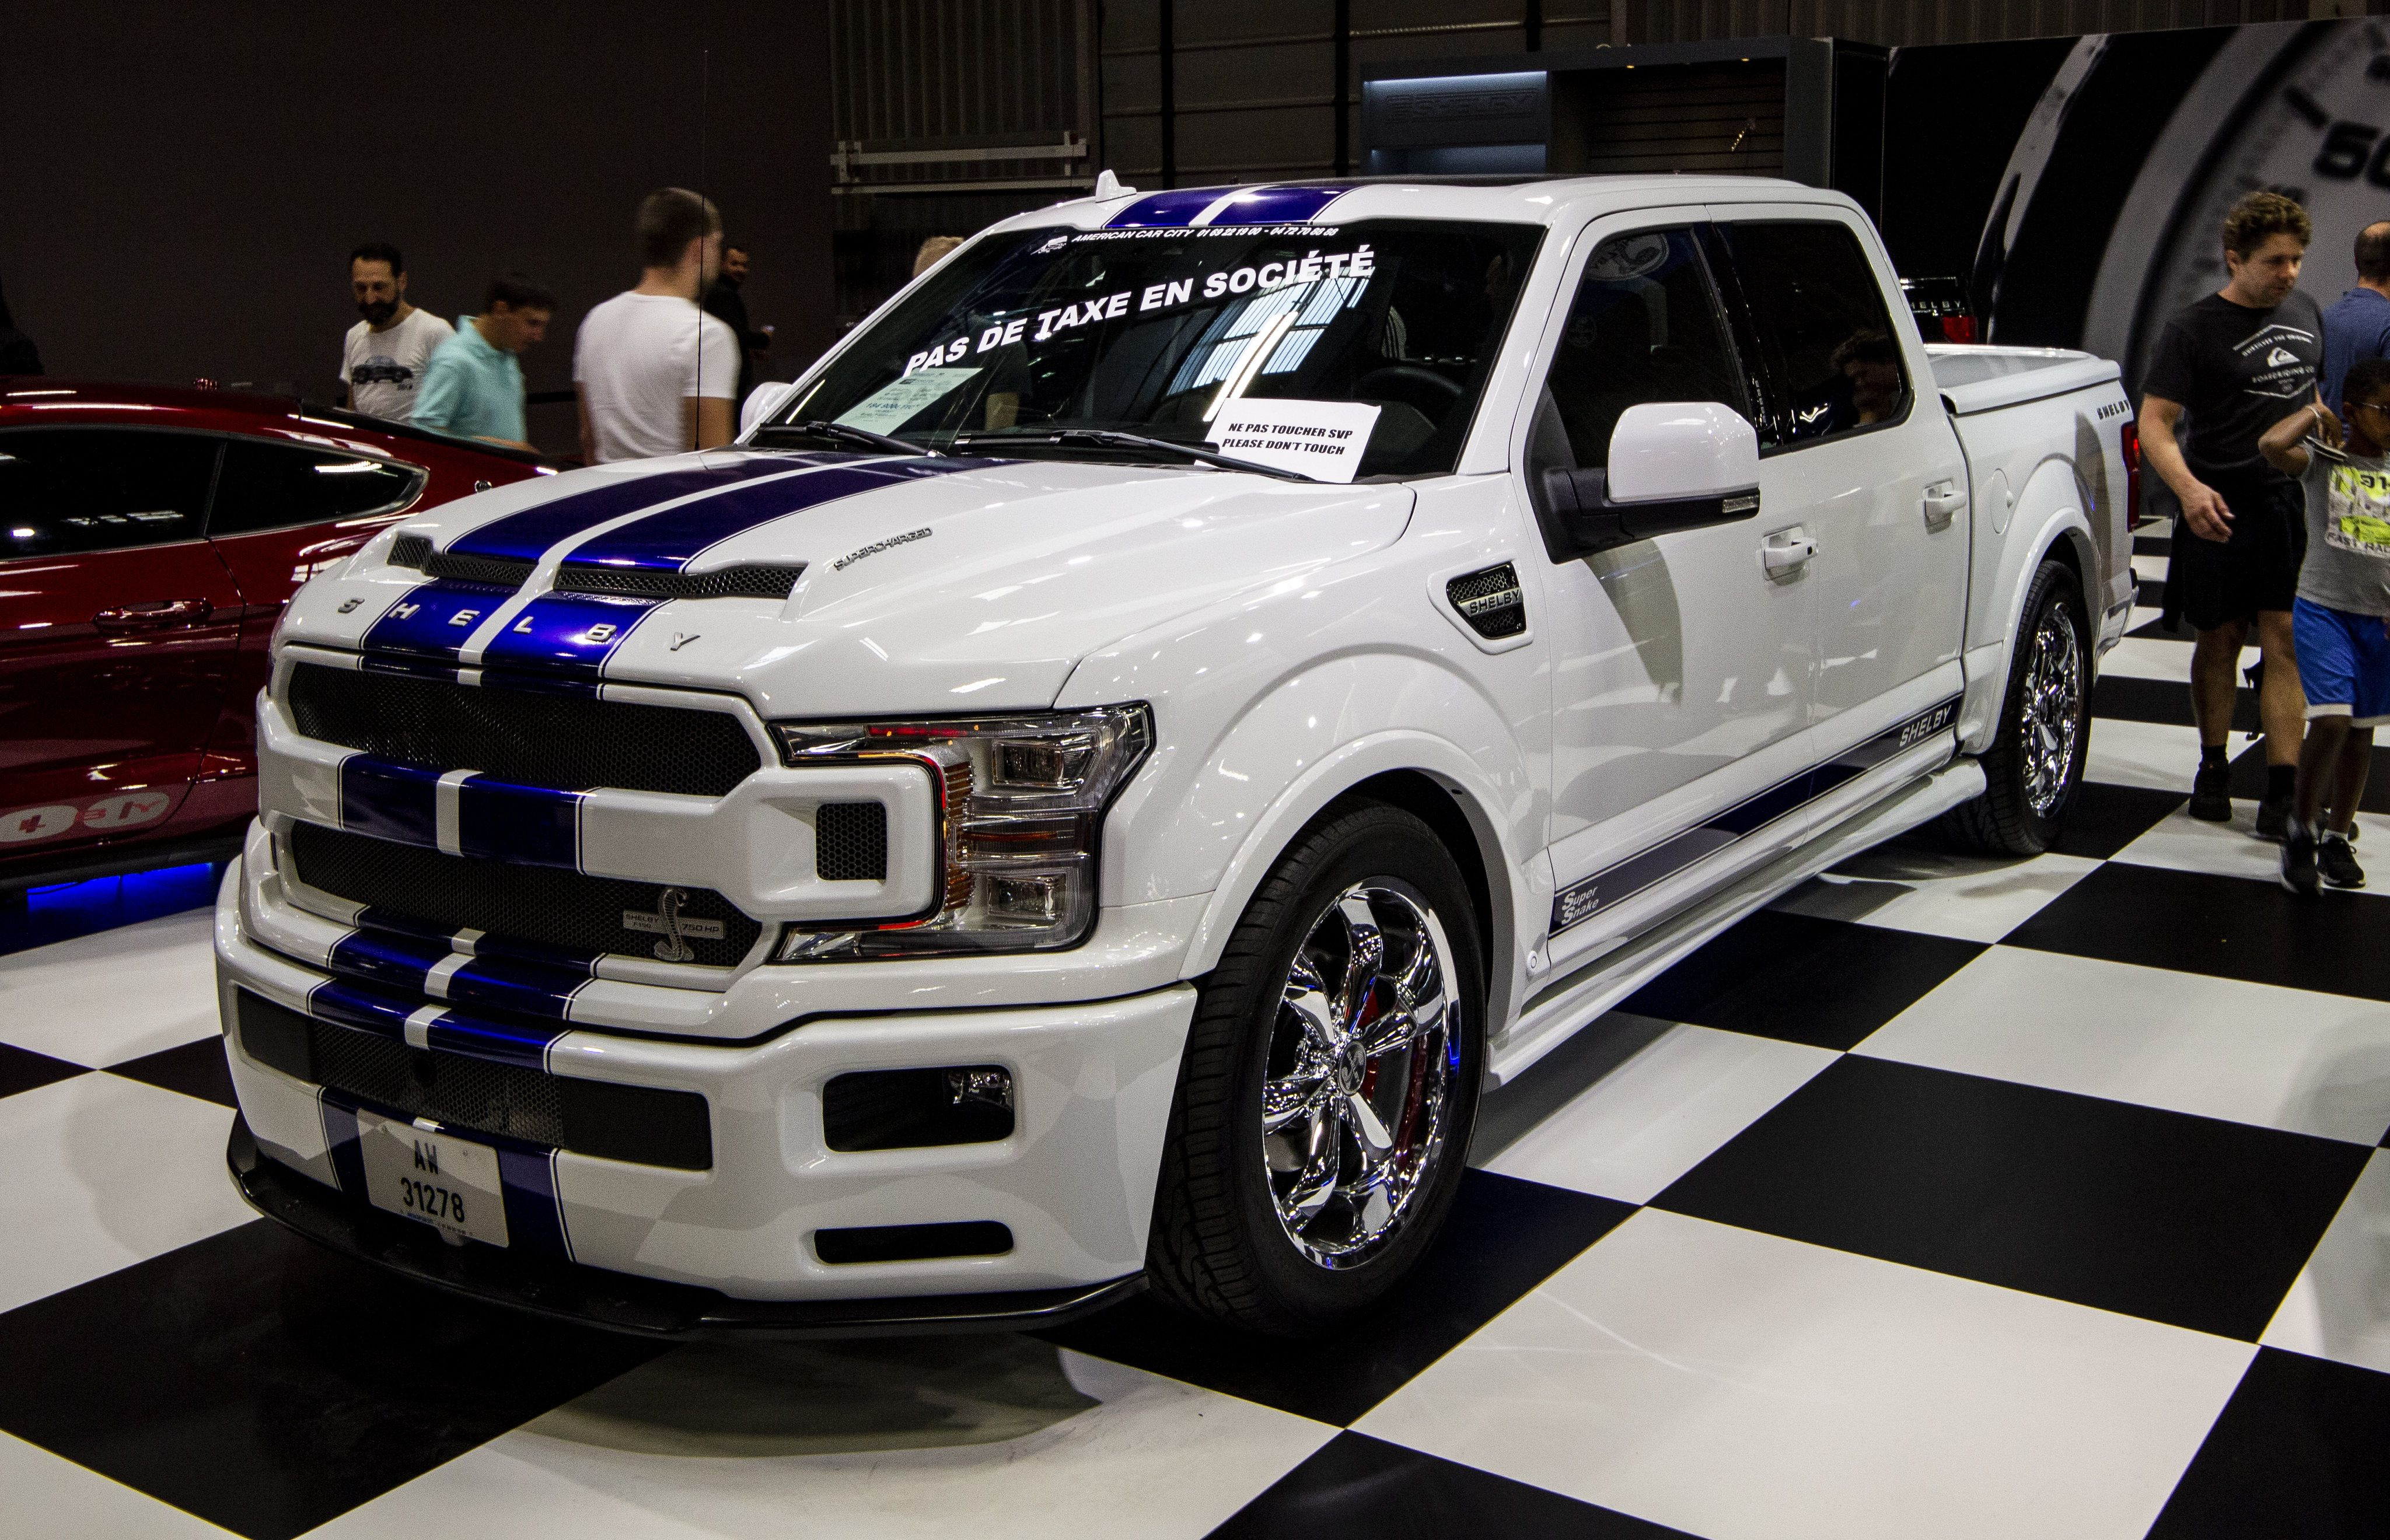 Shelby F150 Super Snake Paris Motor Show 2018 Shelby F150 F150 Ford Mustang Shelby Gt500